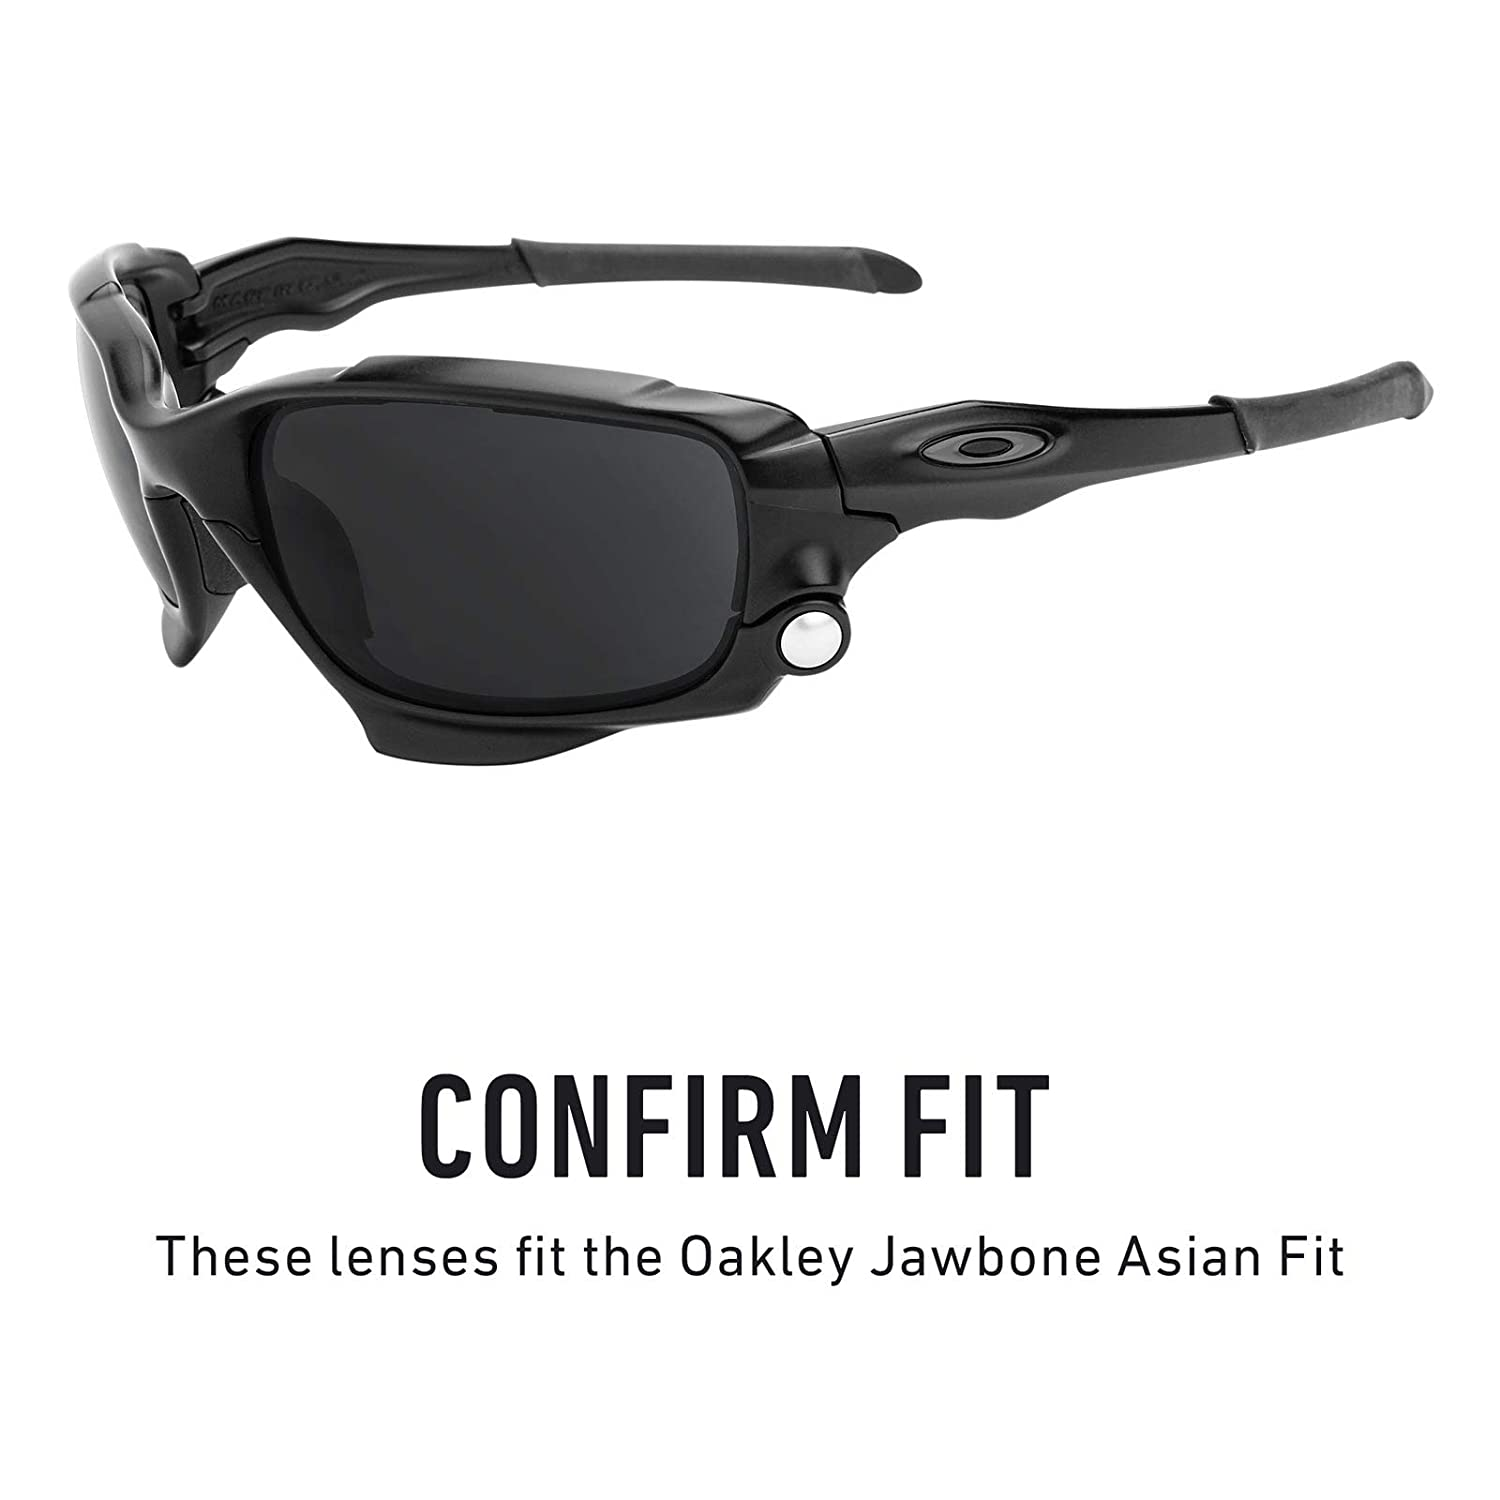 245c22c66a69a Amazon.com  Revant Polarized Replacement Lenses for Oakley Jawbone (Asian  Fit) Elite Black Chrome MirrorShield  Sports   Outdoors